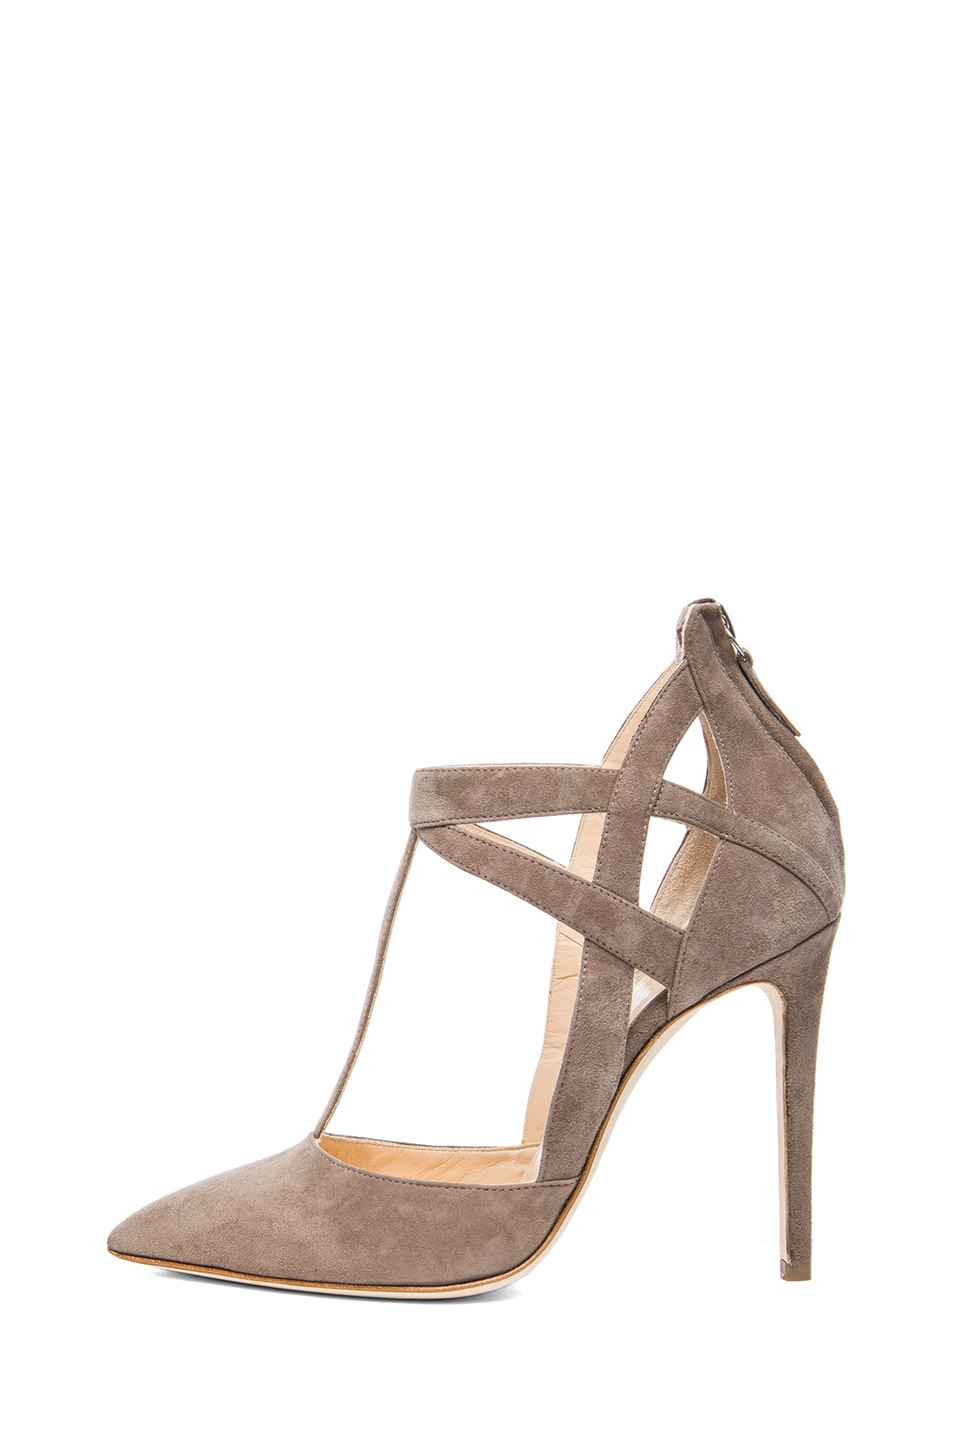 Image 1 of Alejandro Ingelmo Tara Suede T-Strap Pumps in Taupe